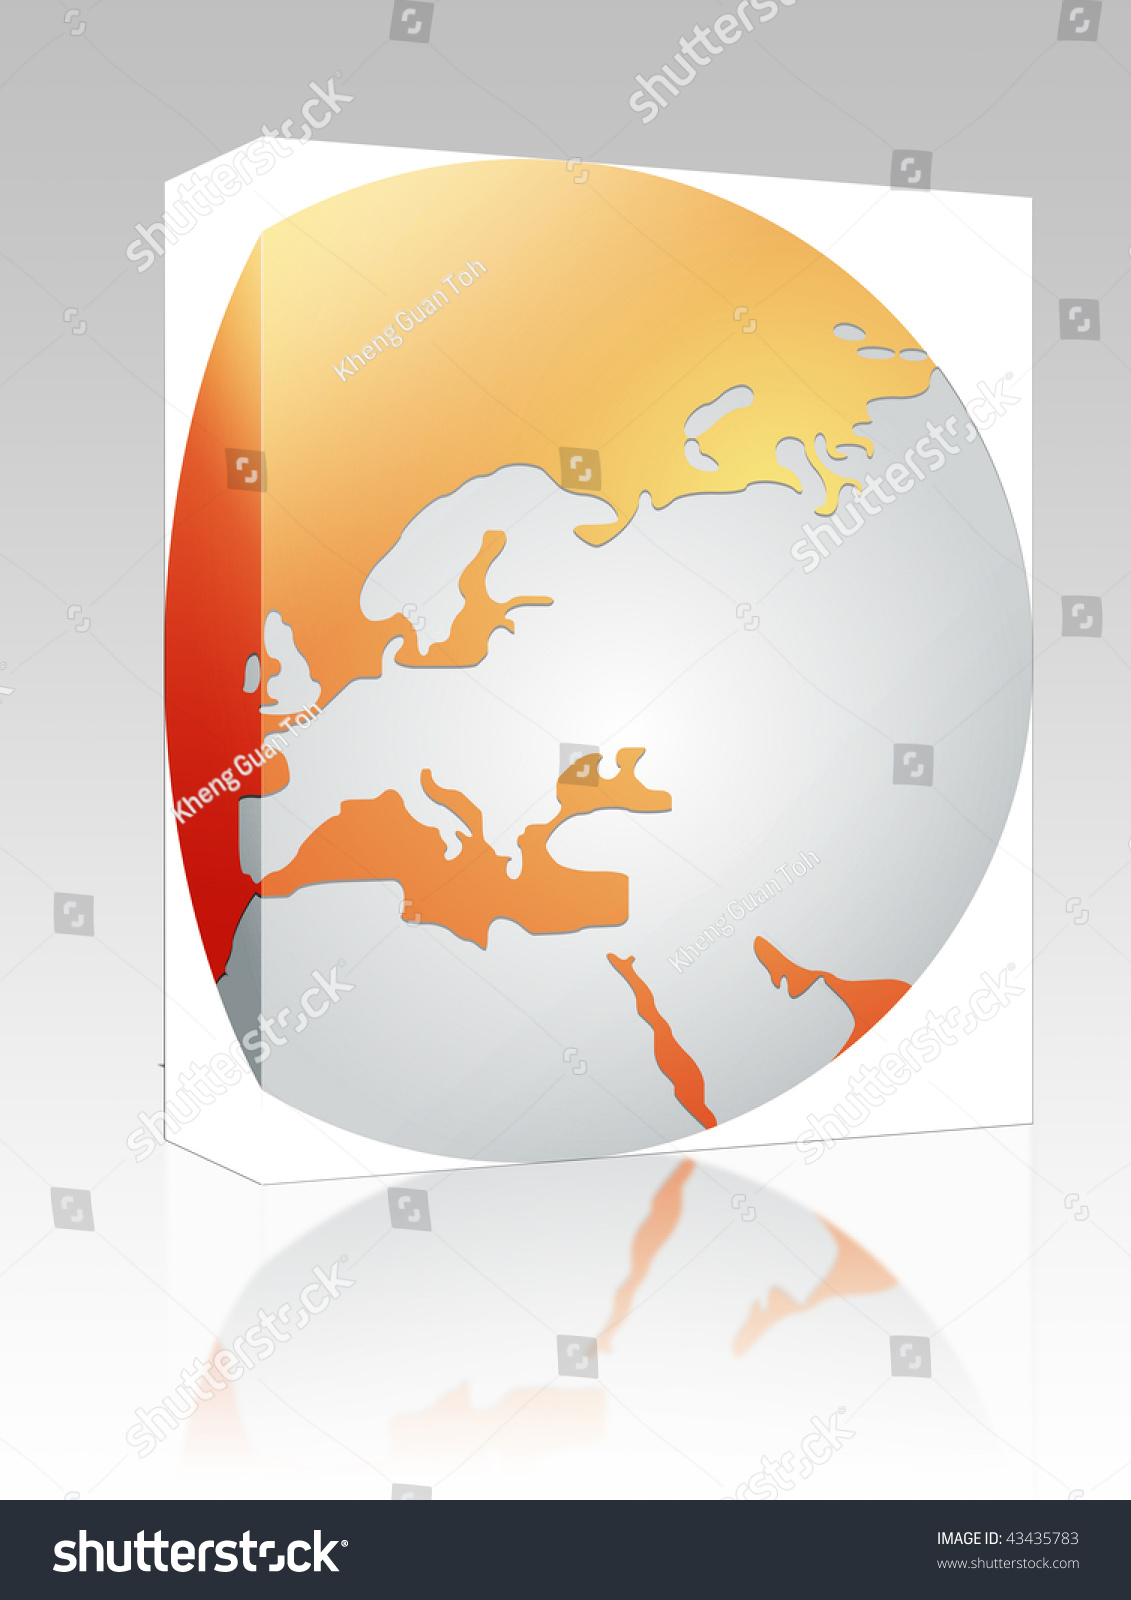 Software package box globe map illustration stock illustration software package box globe map illustration of europe continent countries gumiabroncs Images